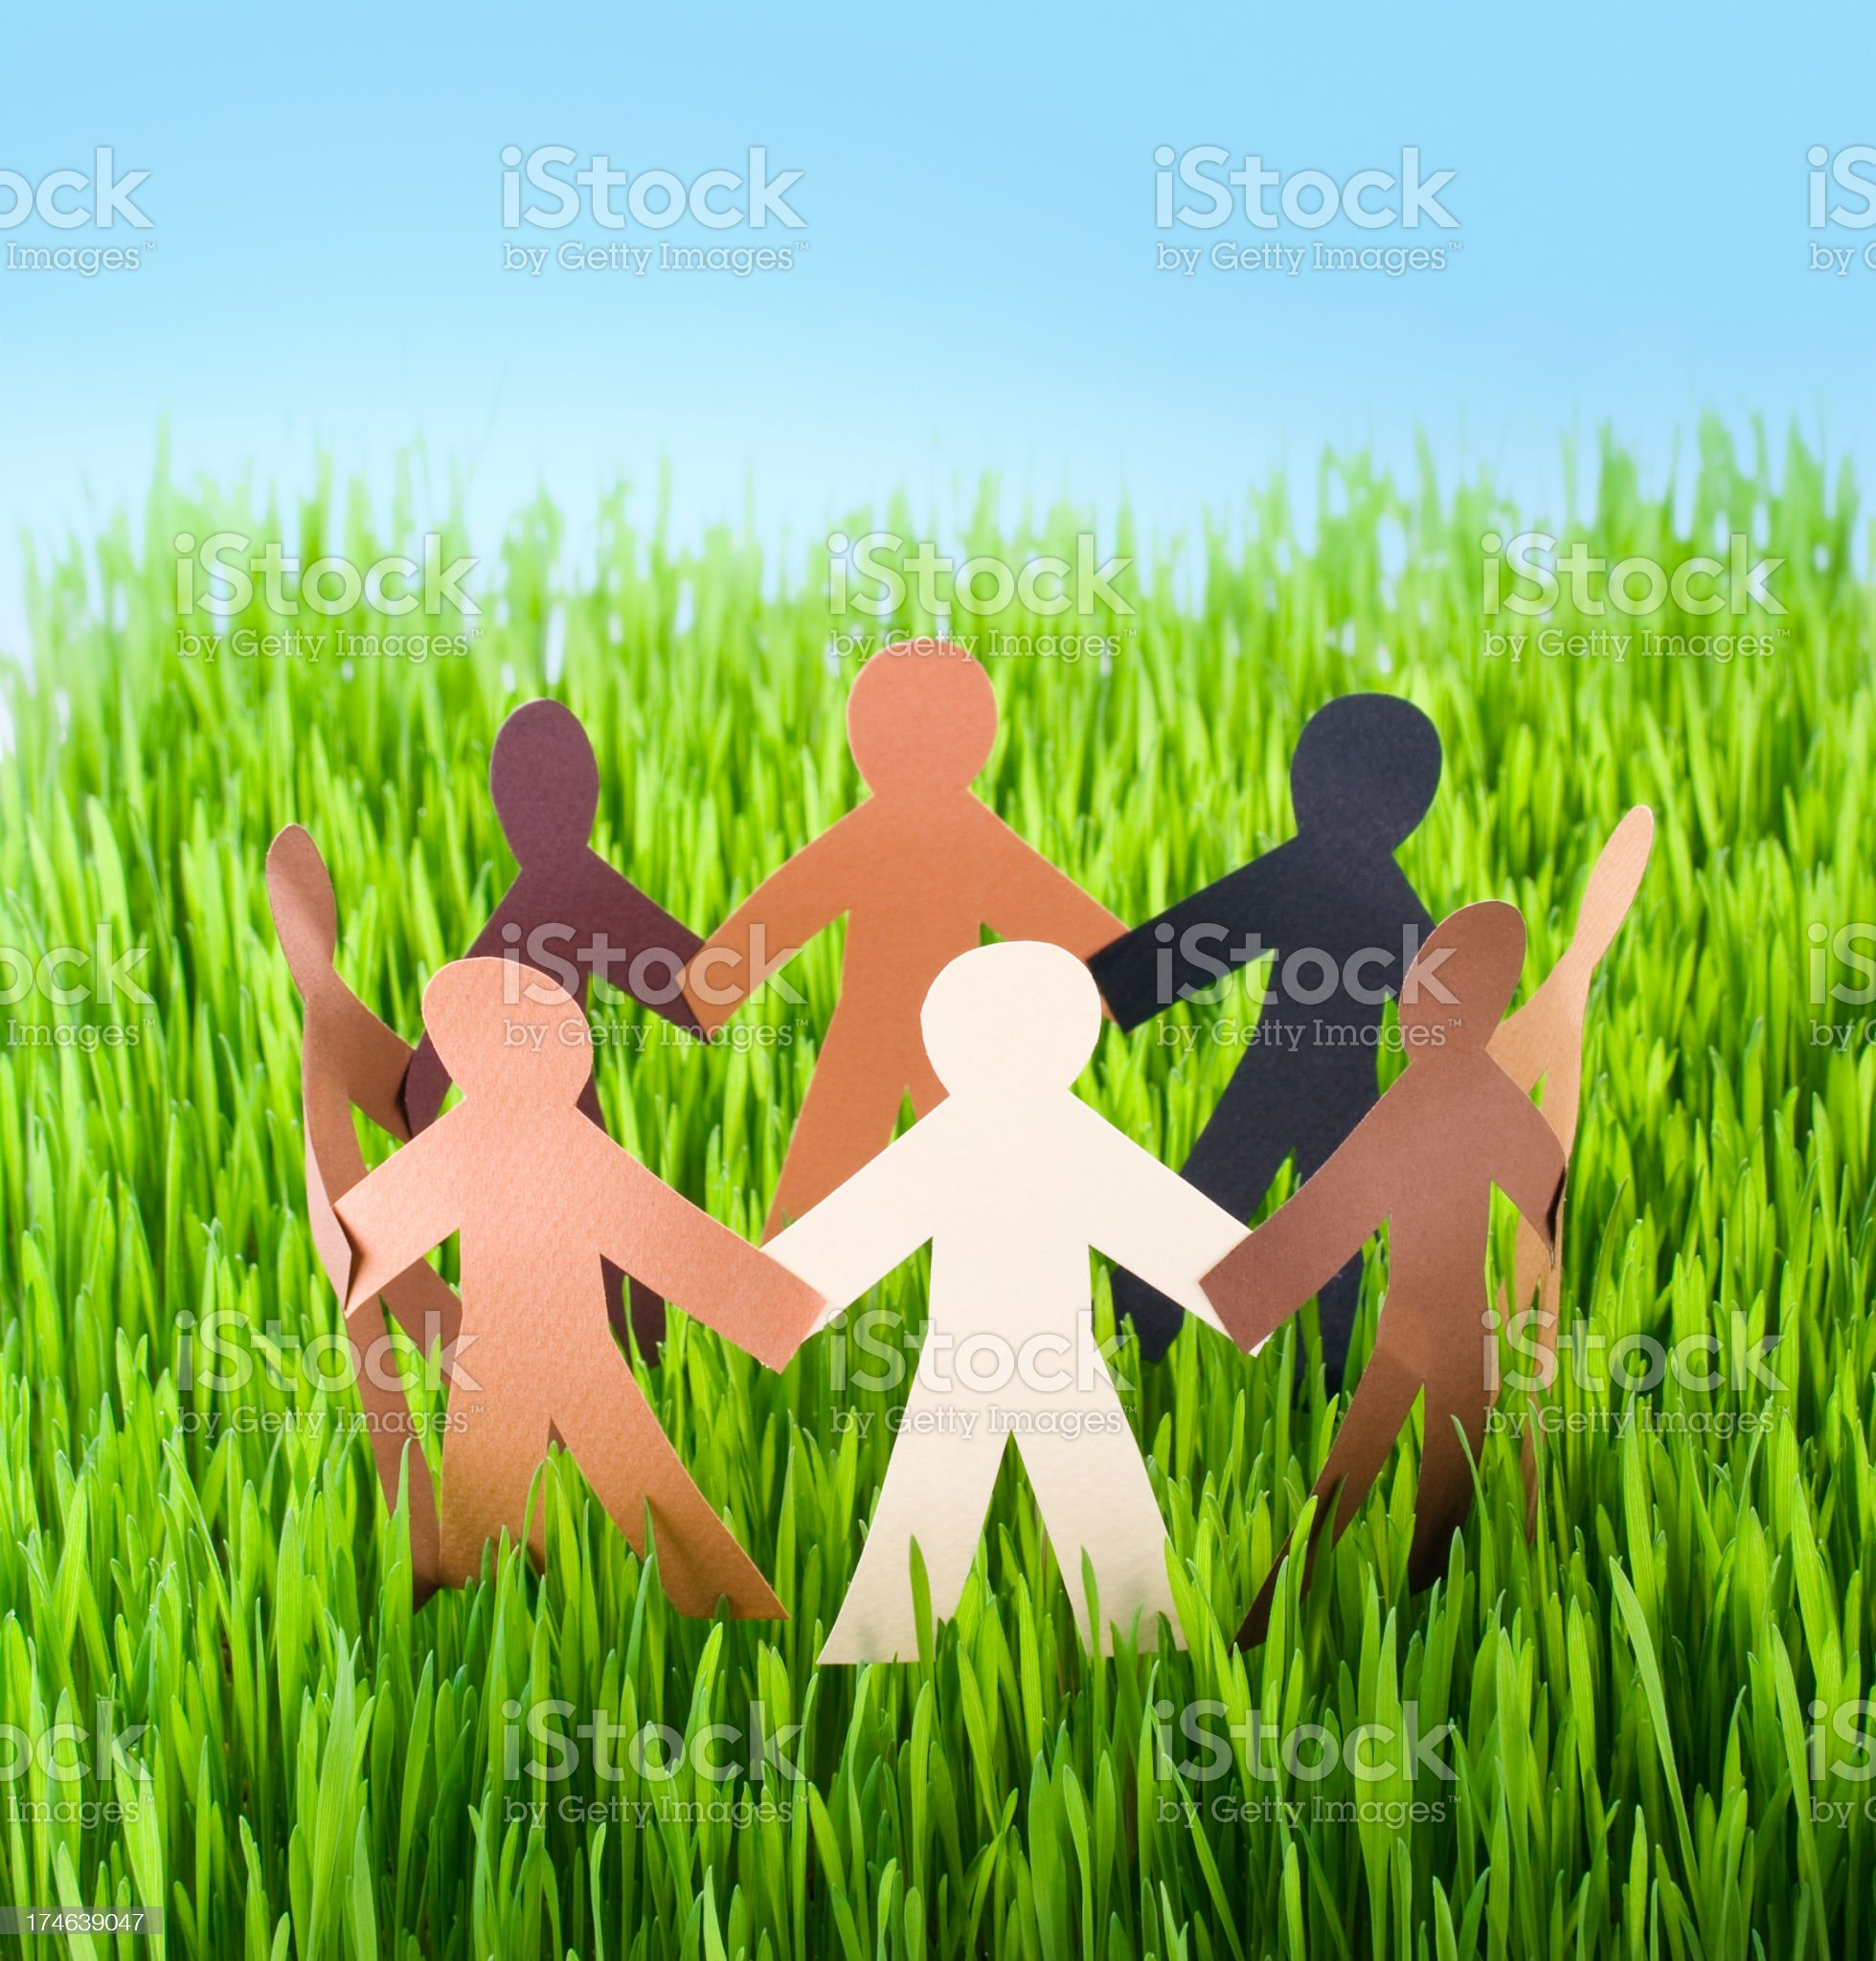 Paper people are on lawn enjoying the sunshine royalty-free stock photo